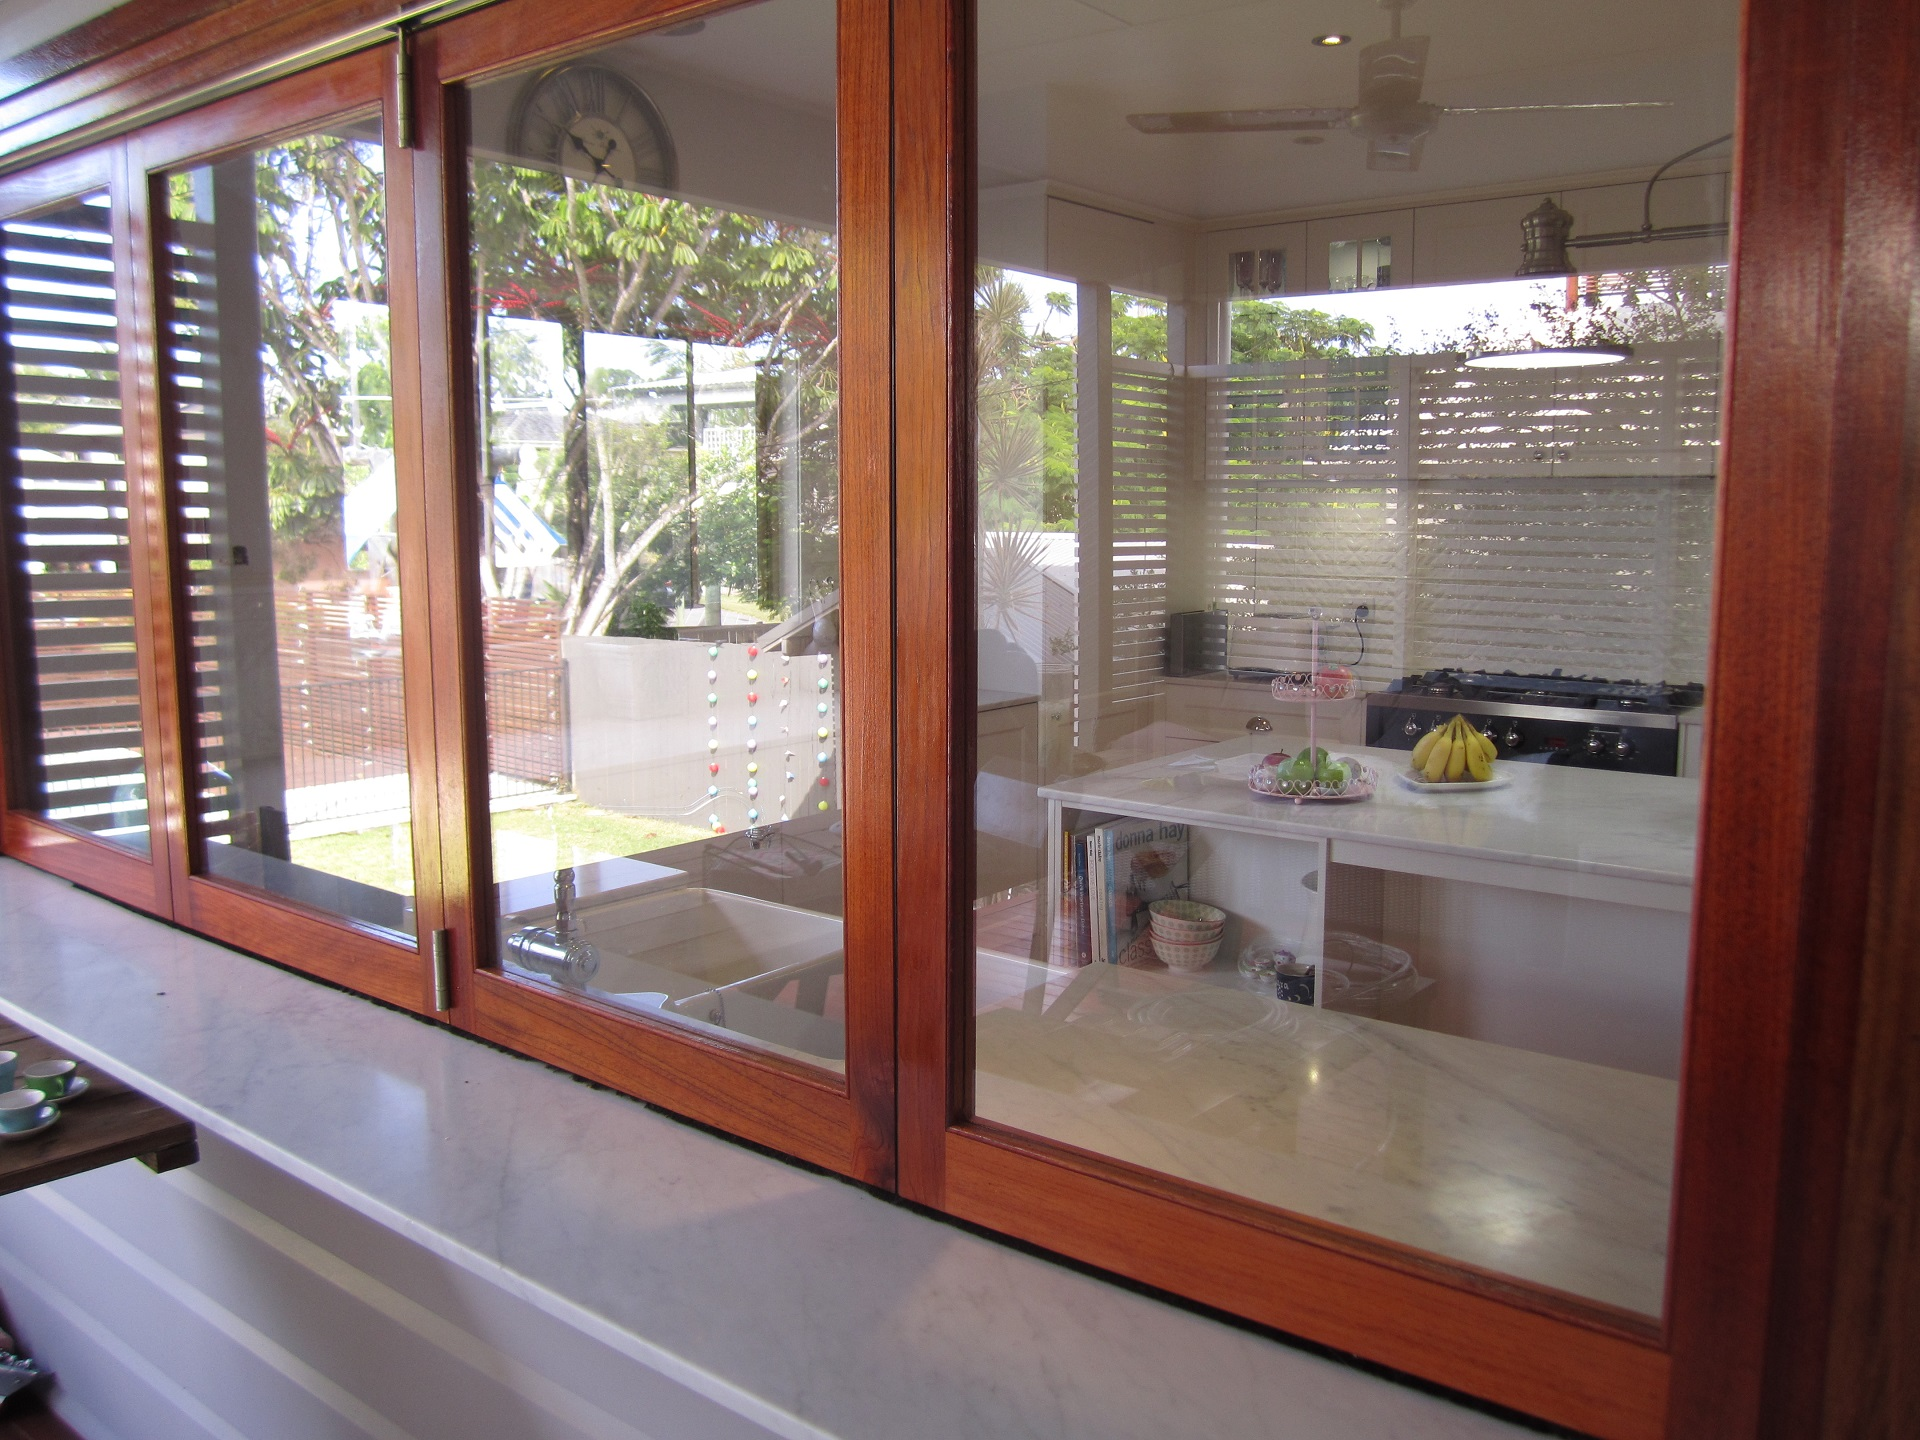 Brisbane Kitchen Design Garate Graceville Traditional KitchenRenovation  Kitchen with Bifold Window Servery(14)